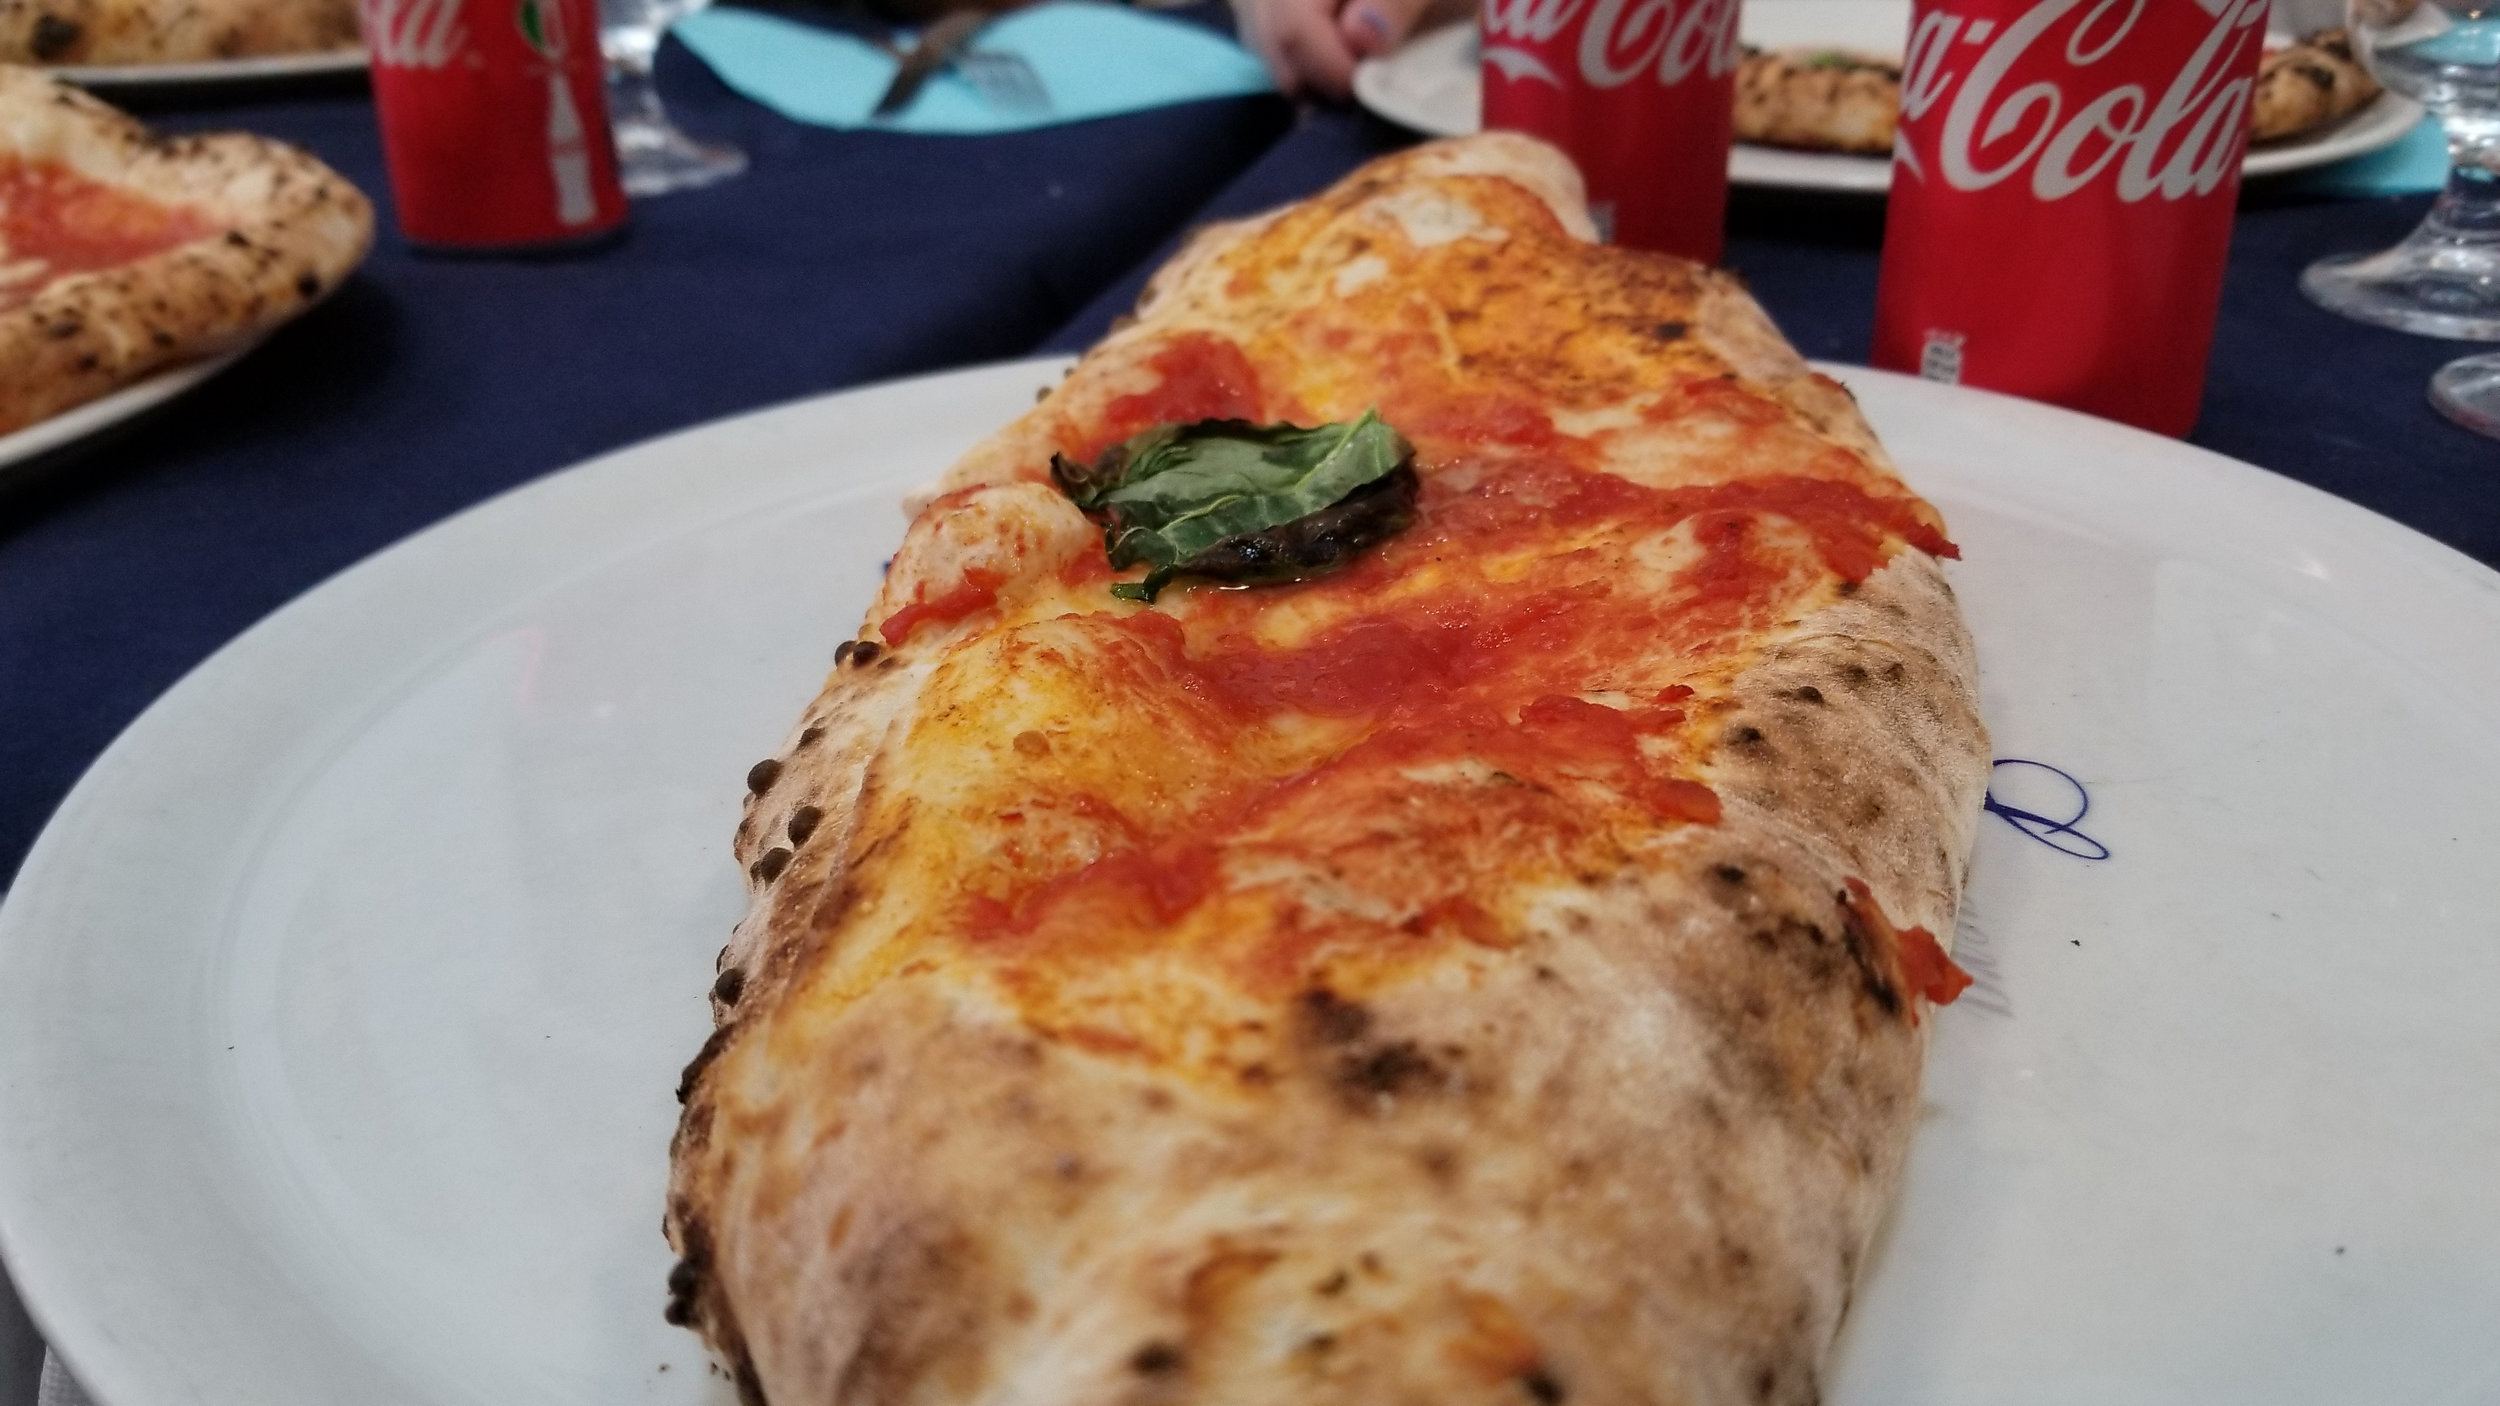 Probably the best Pizza we have ever eaten along with Coke that looks identical, but tastes way different.